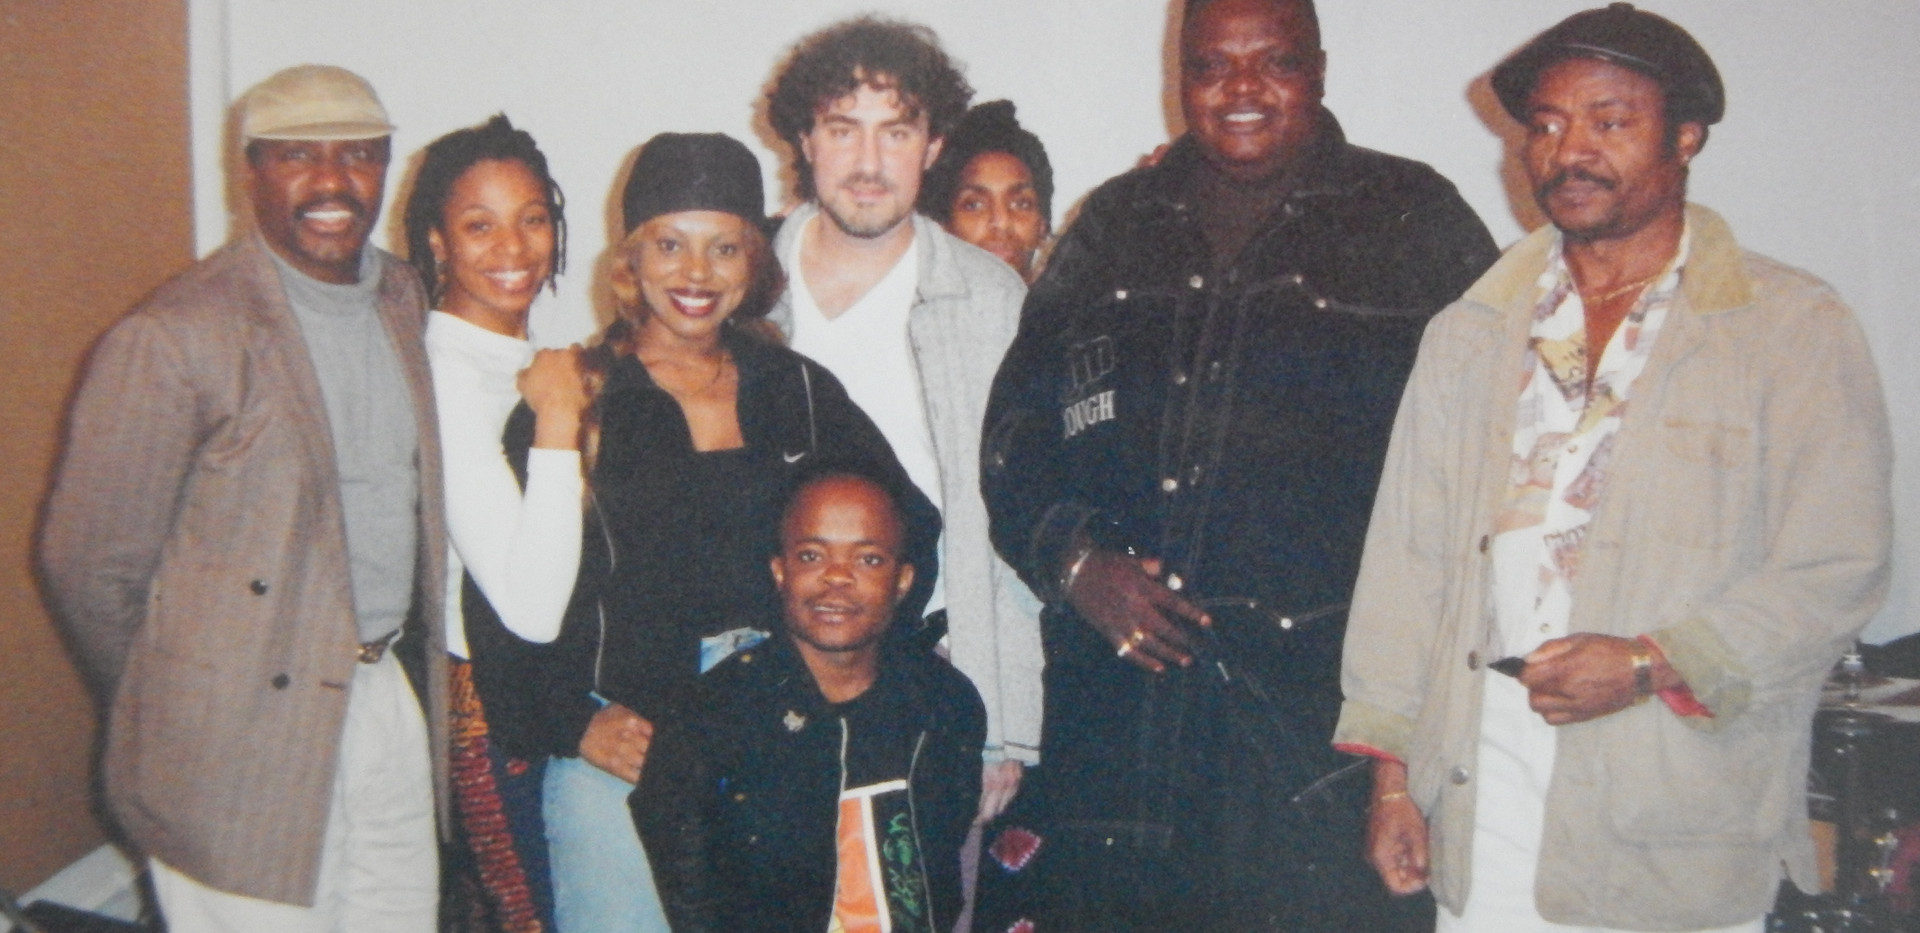 Rehearsal break with Pepe Kale and Dokolos and band getting ready to tour the U.S. in 1997